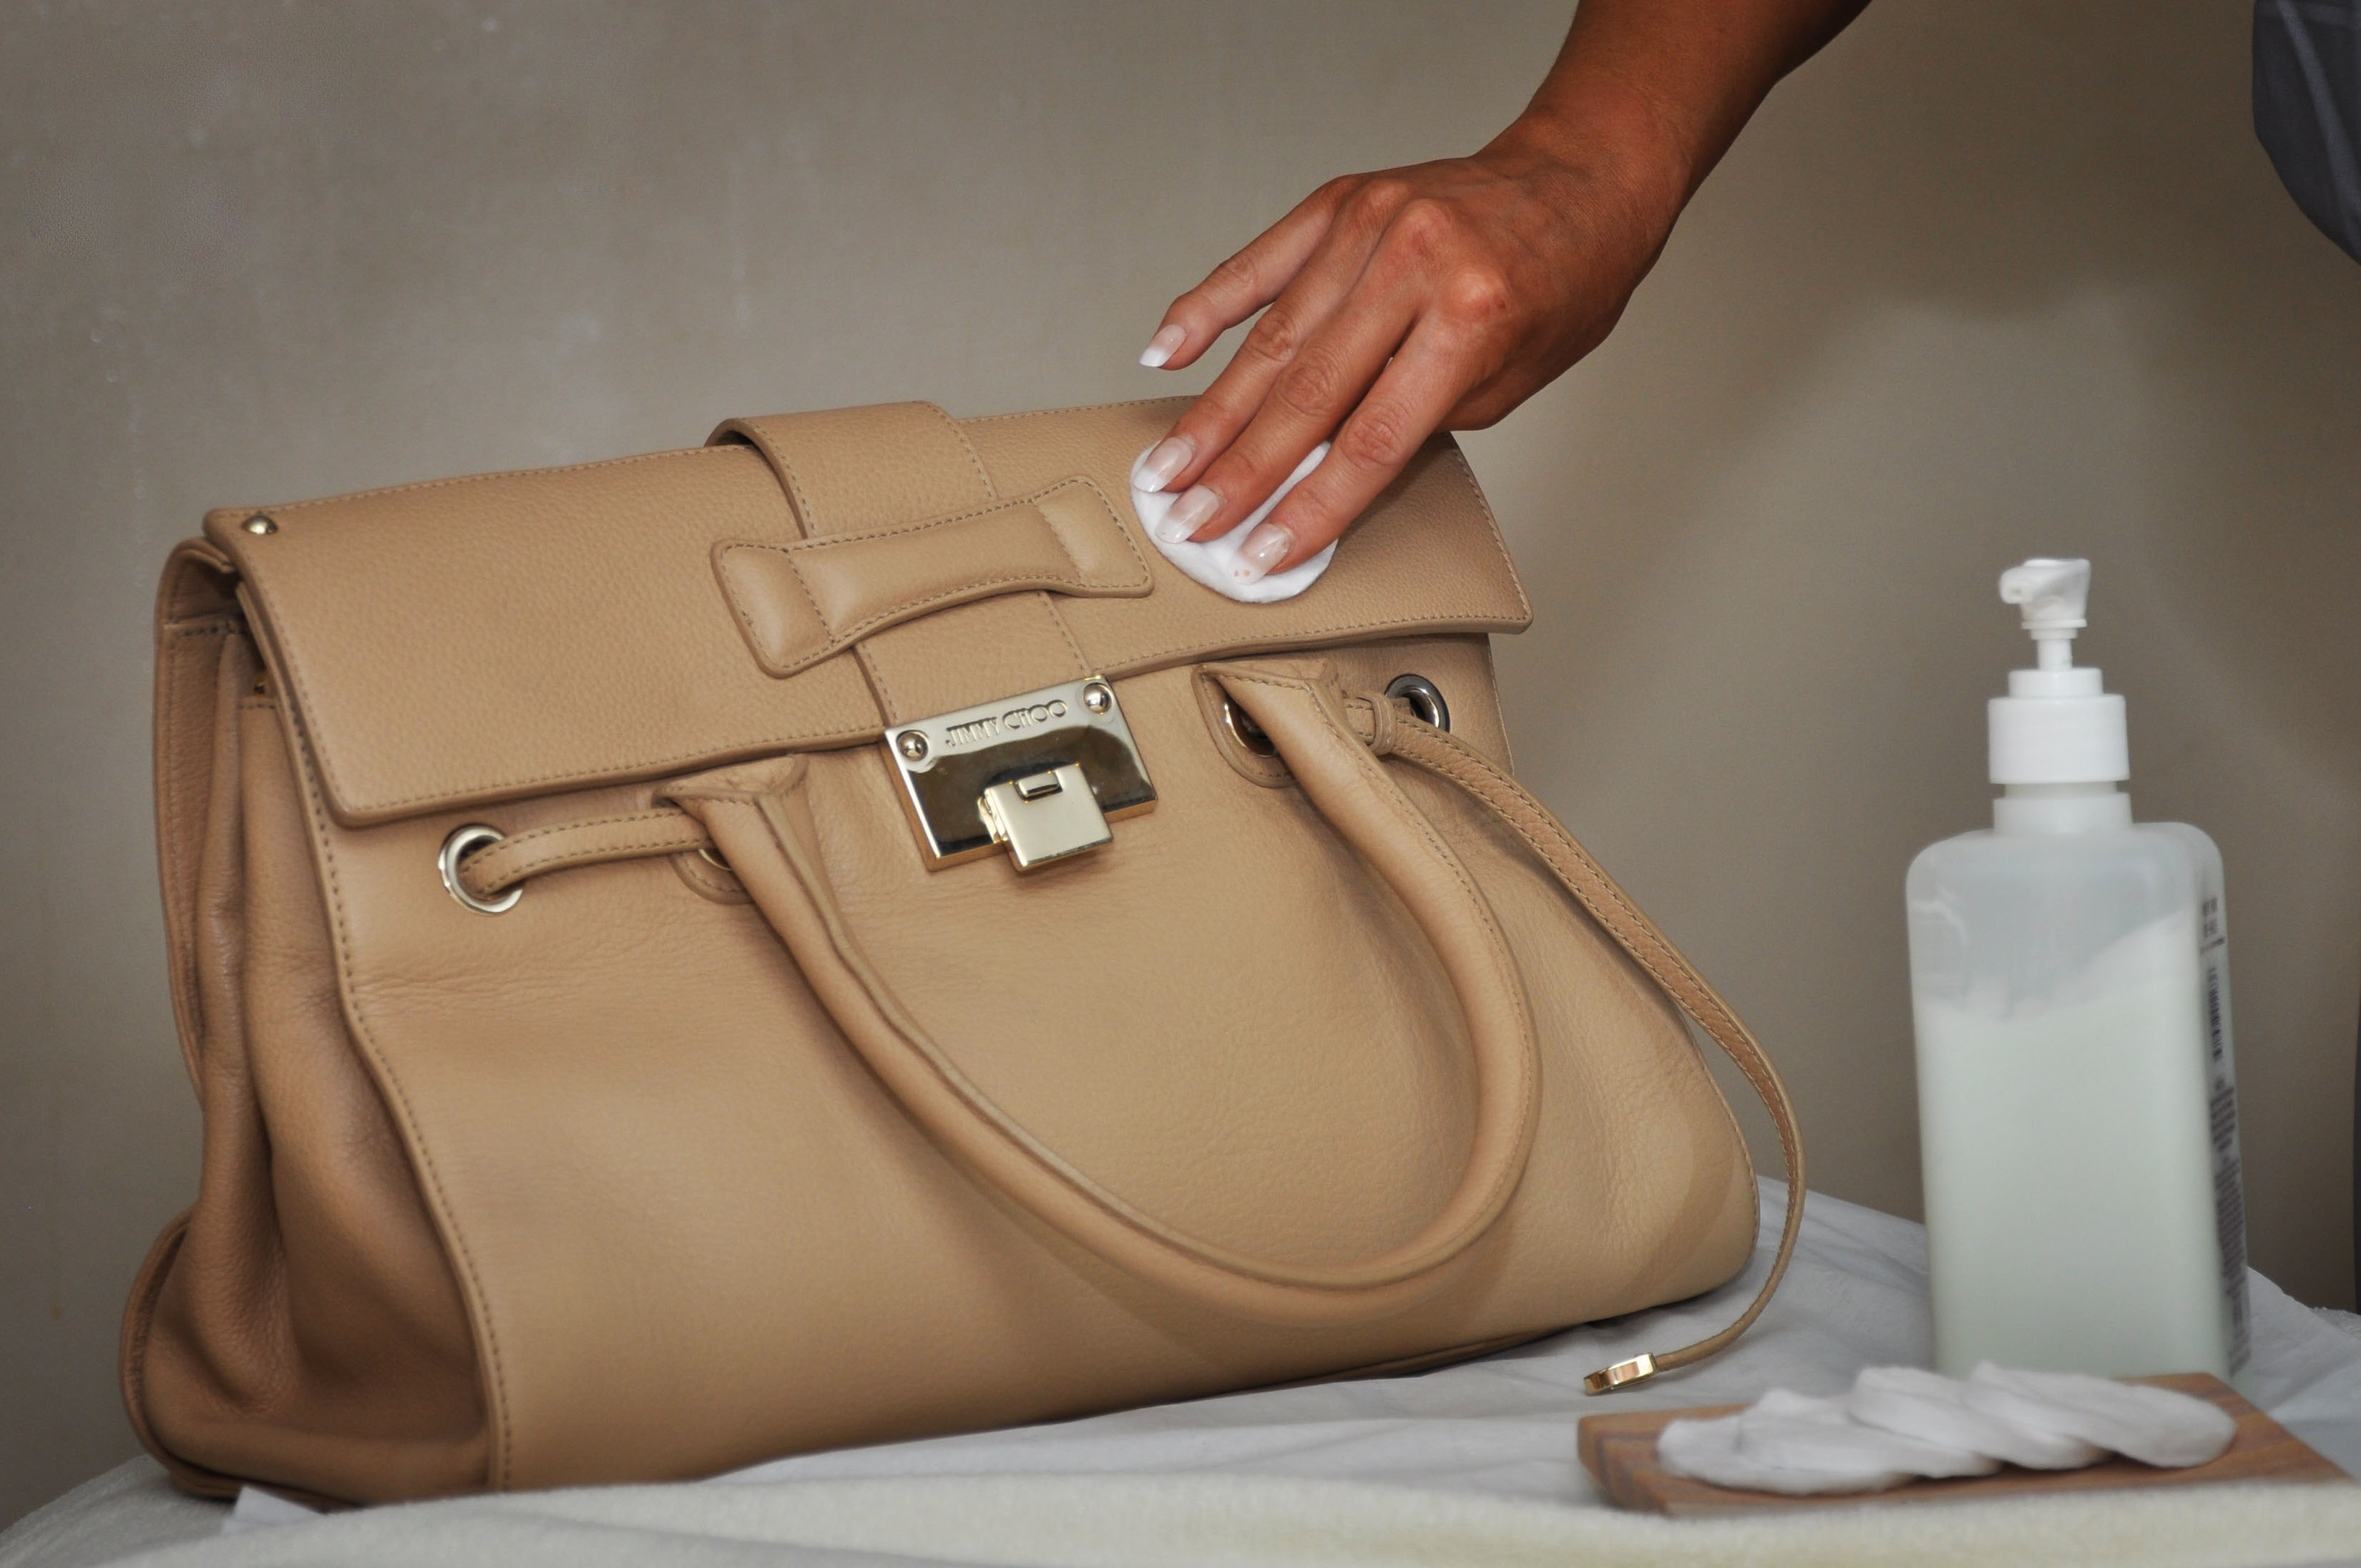 How to clean your designer leather handbag